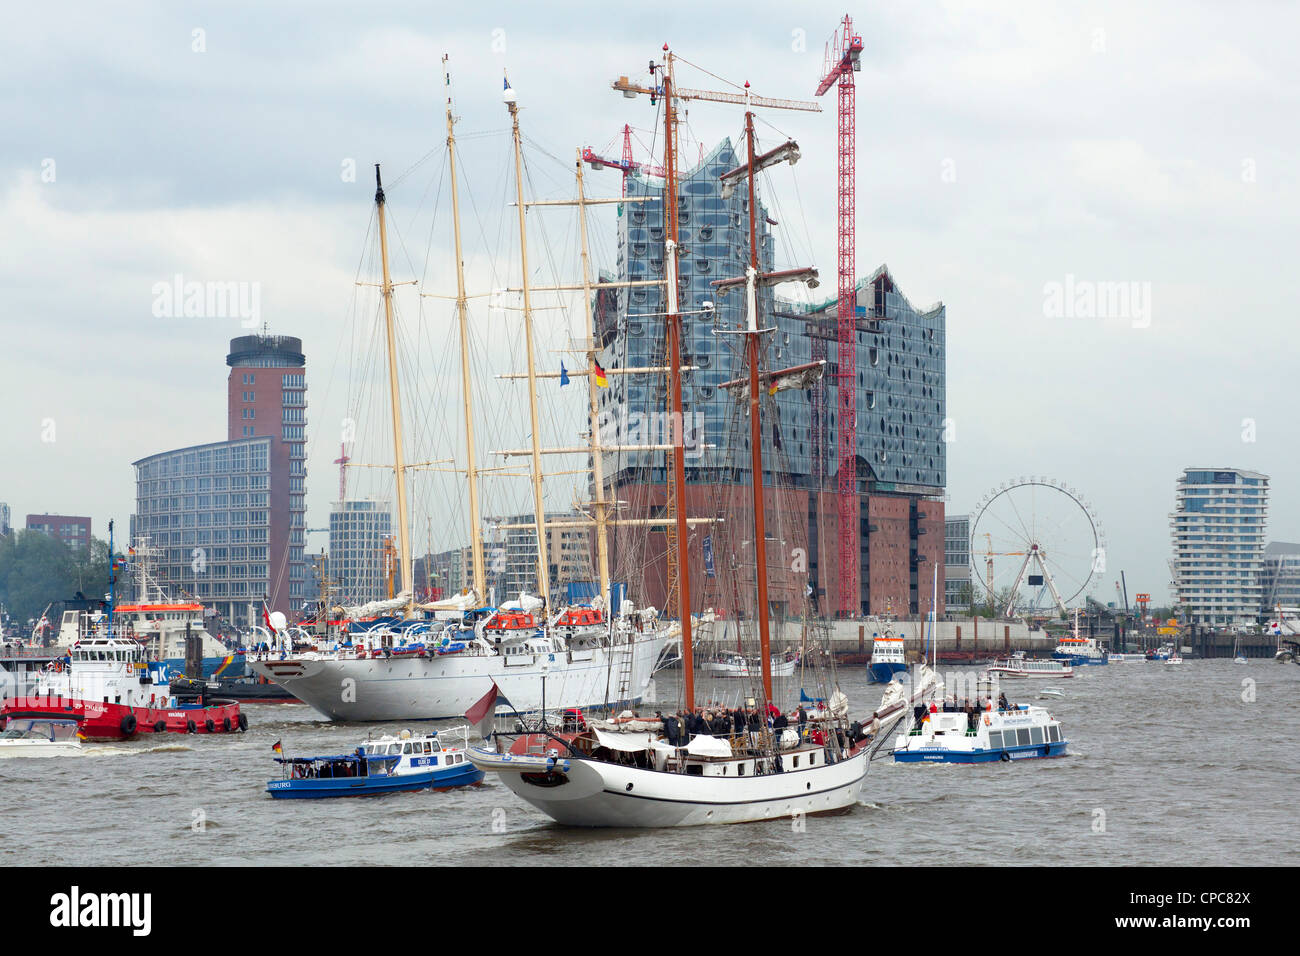 entering port parade, Harbour Birthday, Hamburg, Germany Stock Photo